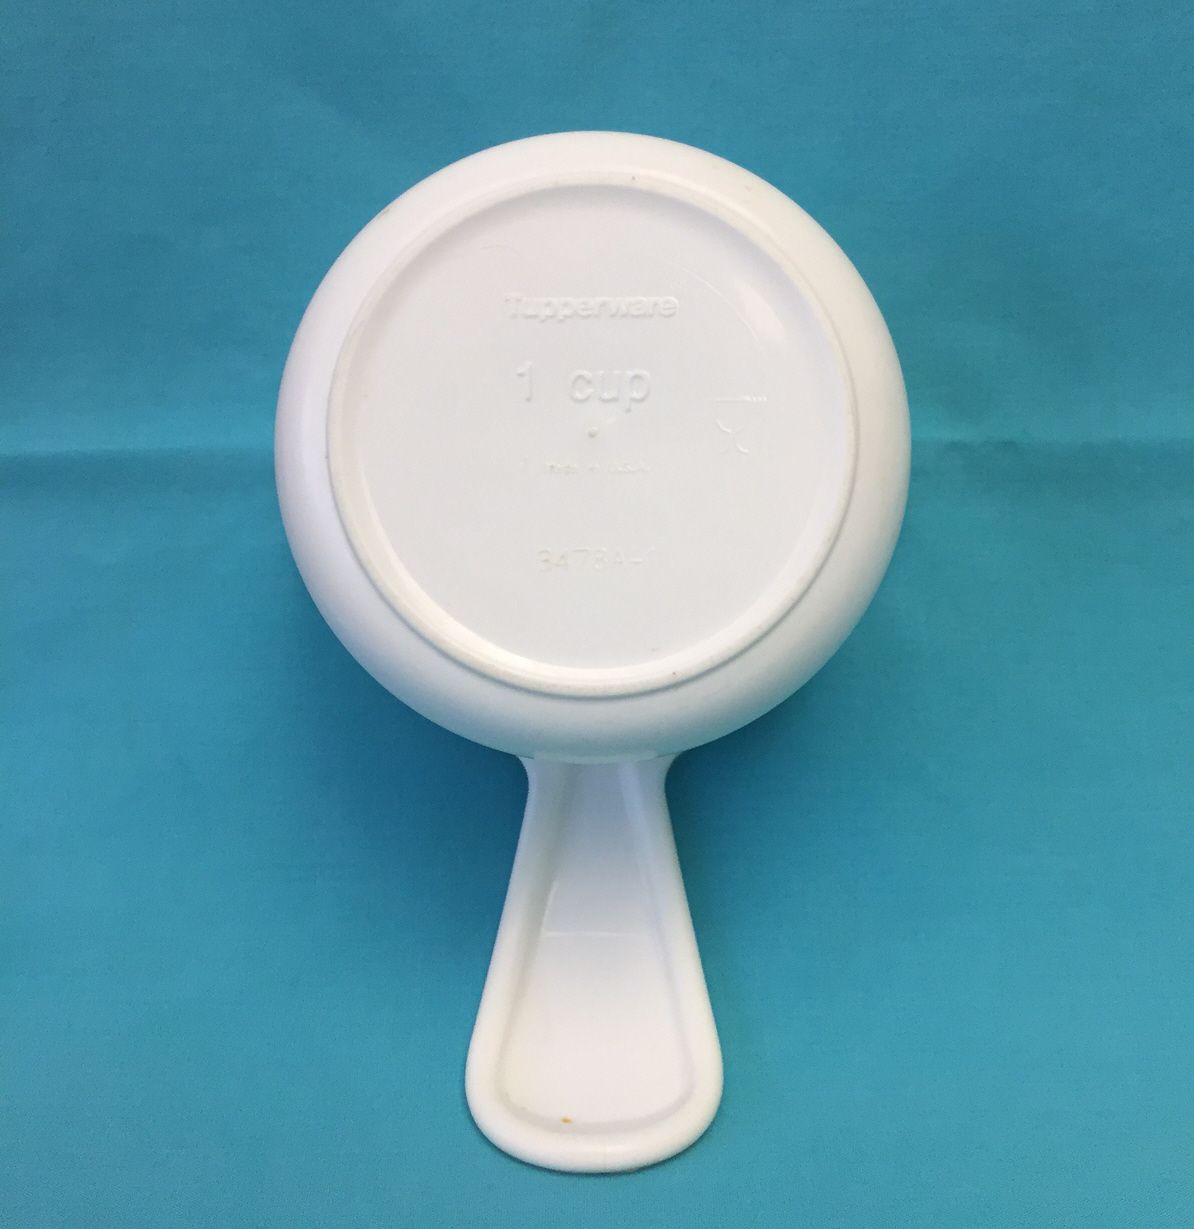 Vintage Tupperware measuring cups full set of 6 curved handles white with blue image 3